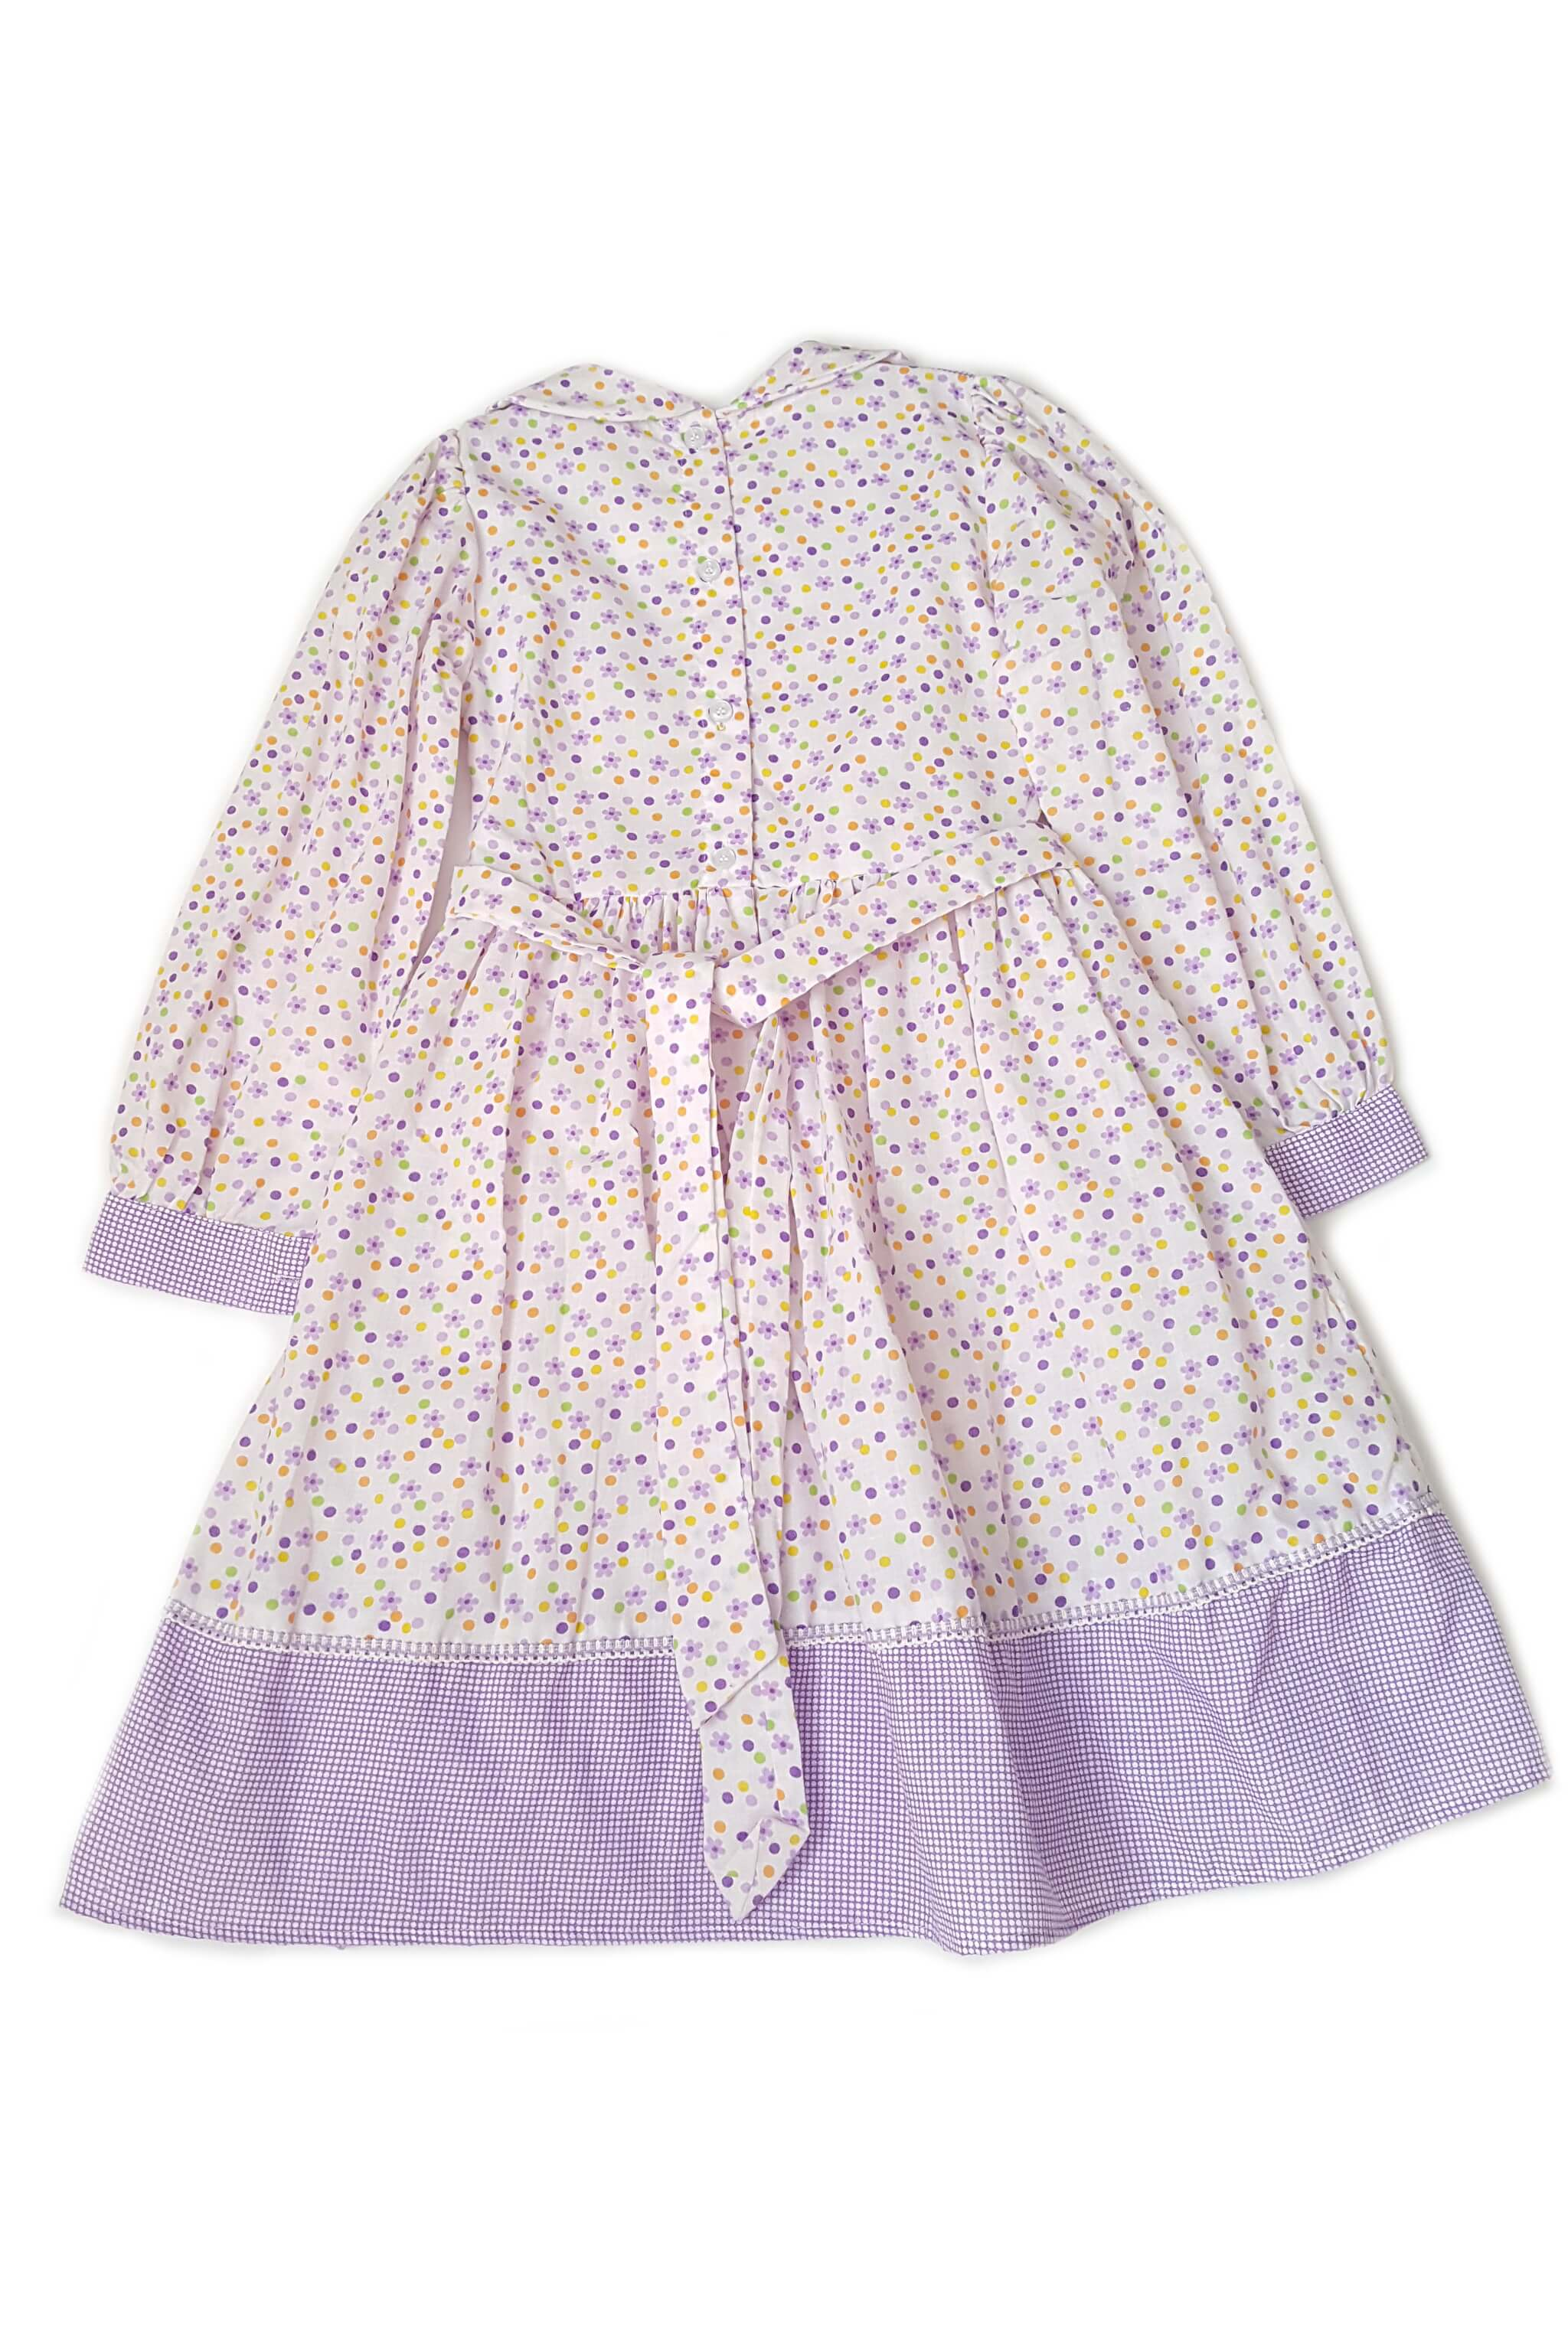 Back of pale purple floral print long sleeves peter pan collar Keira dress with contrasting hem with and button back with sash to tie at waist for girls